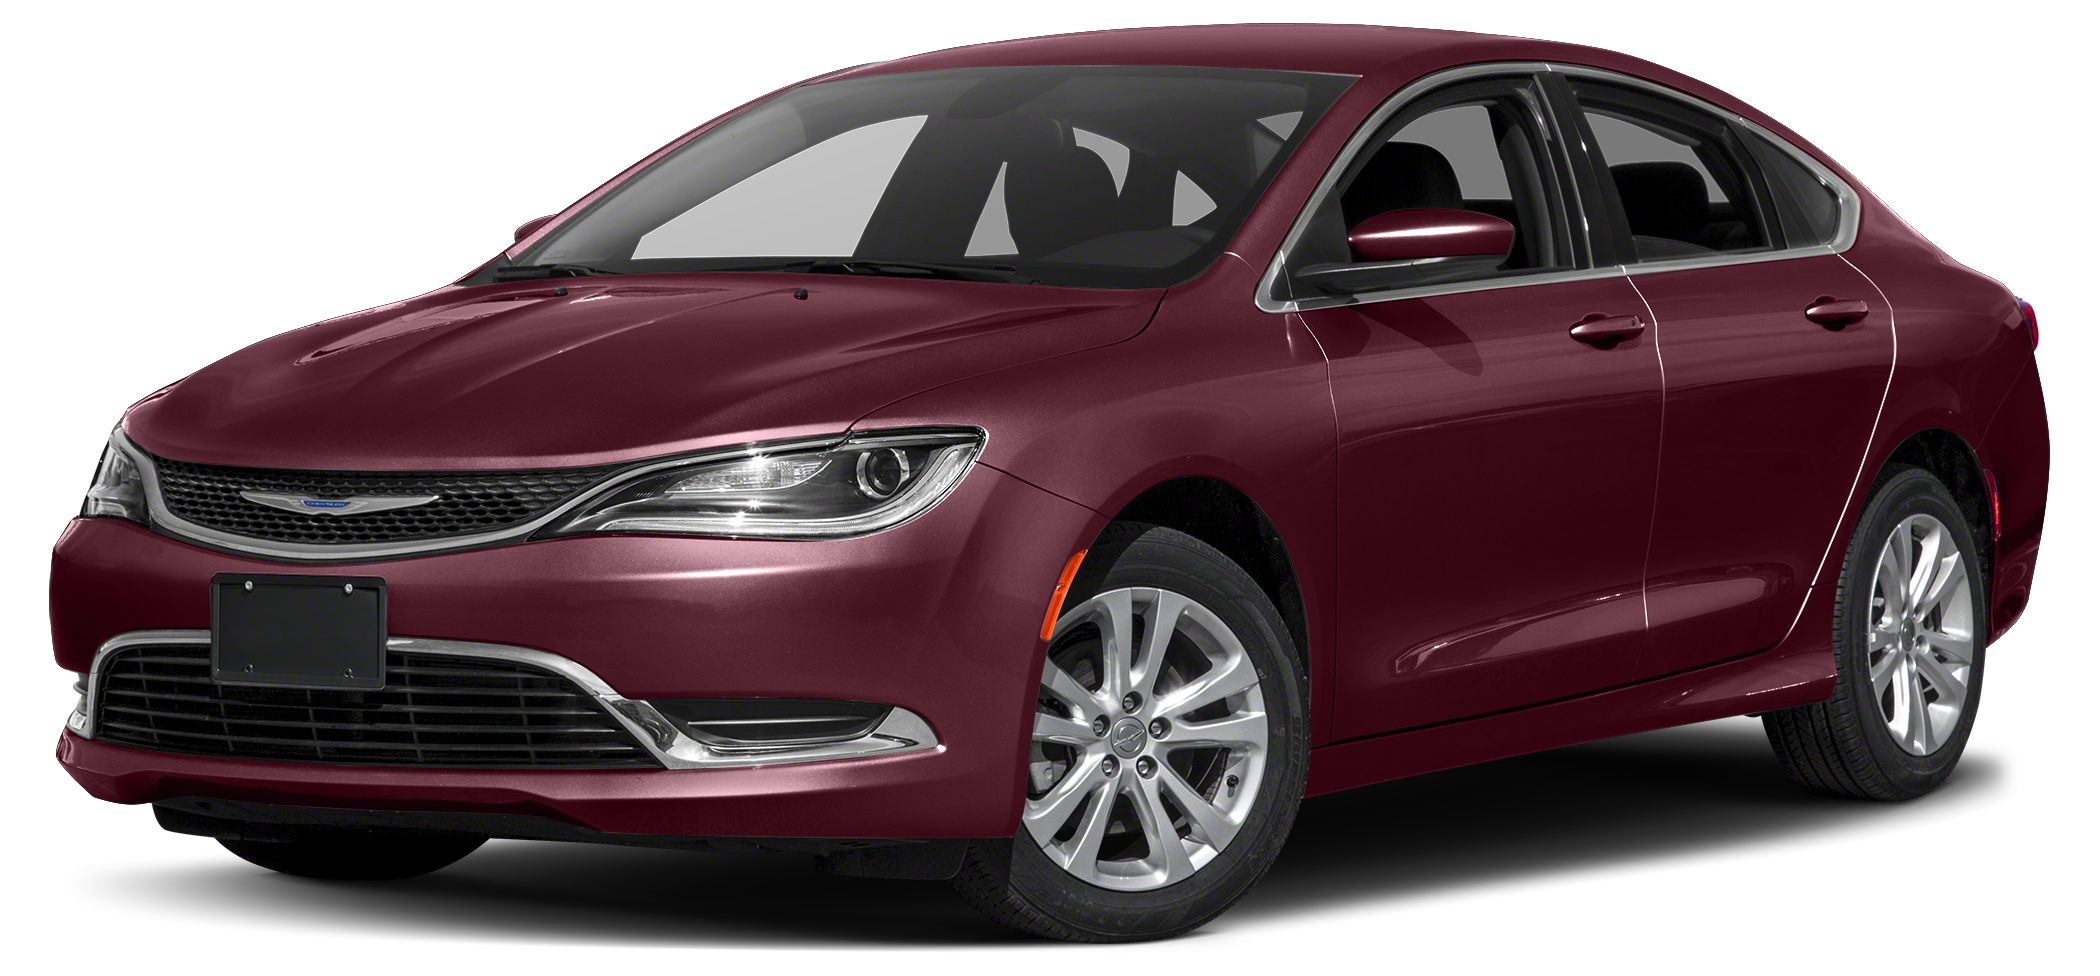 2016 Chrysler 200 Limited At Advantage Chrysler you know you are getting a safe and dependable veh